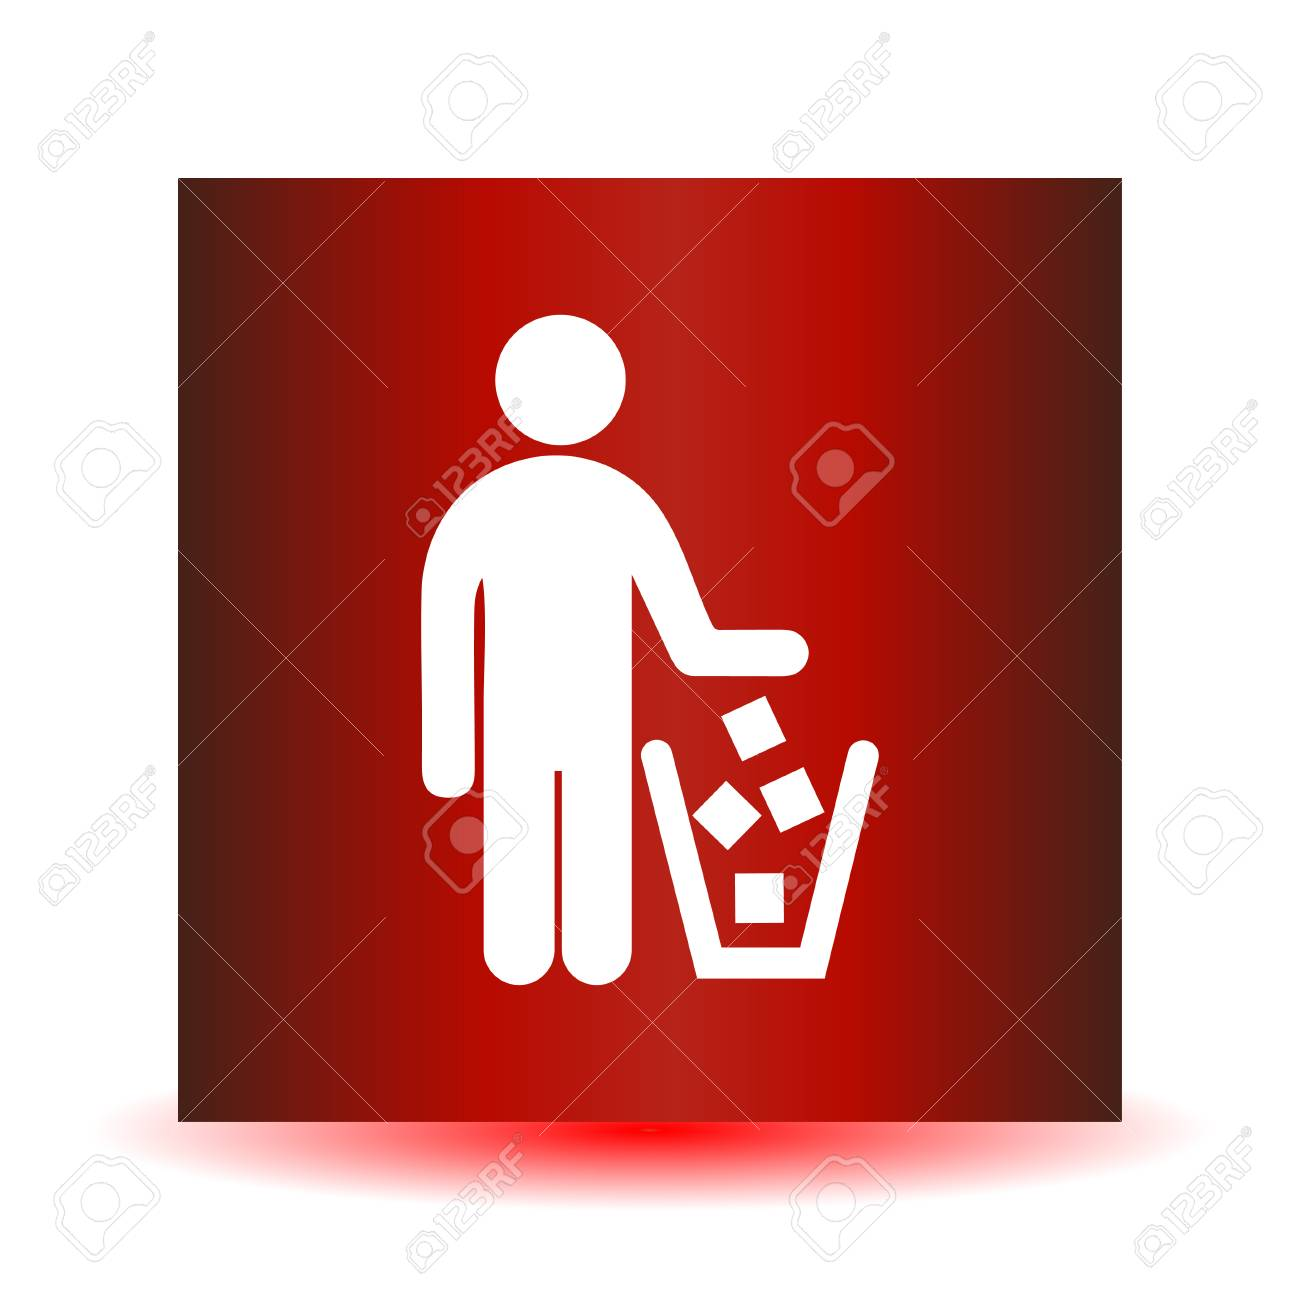 No Littering Sign In Flat Icon Design Vector Illustration Royalty